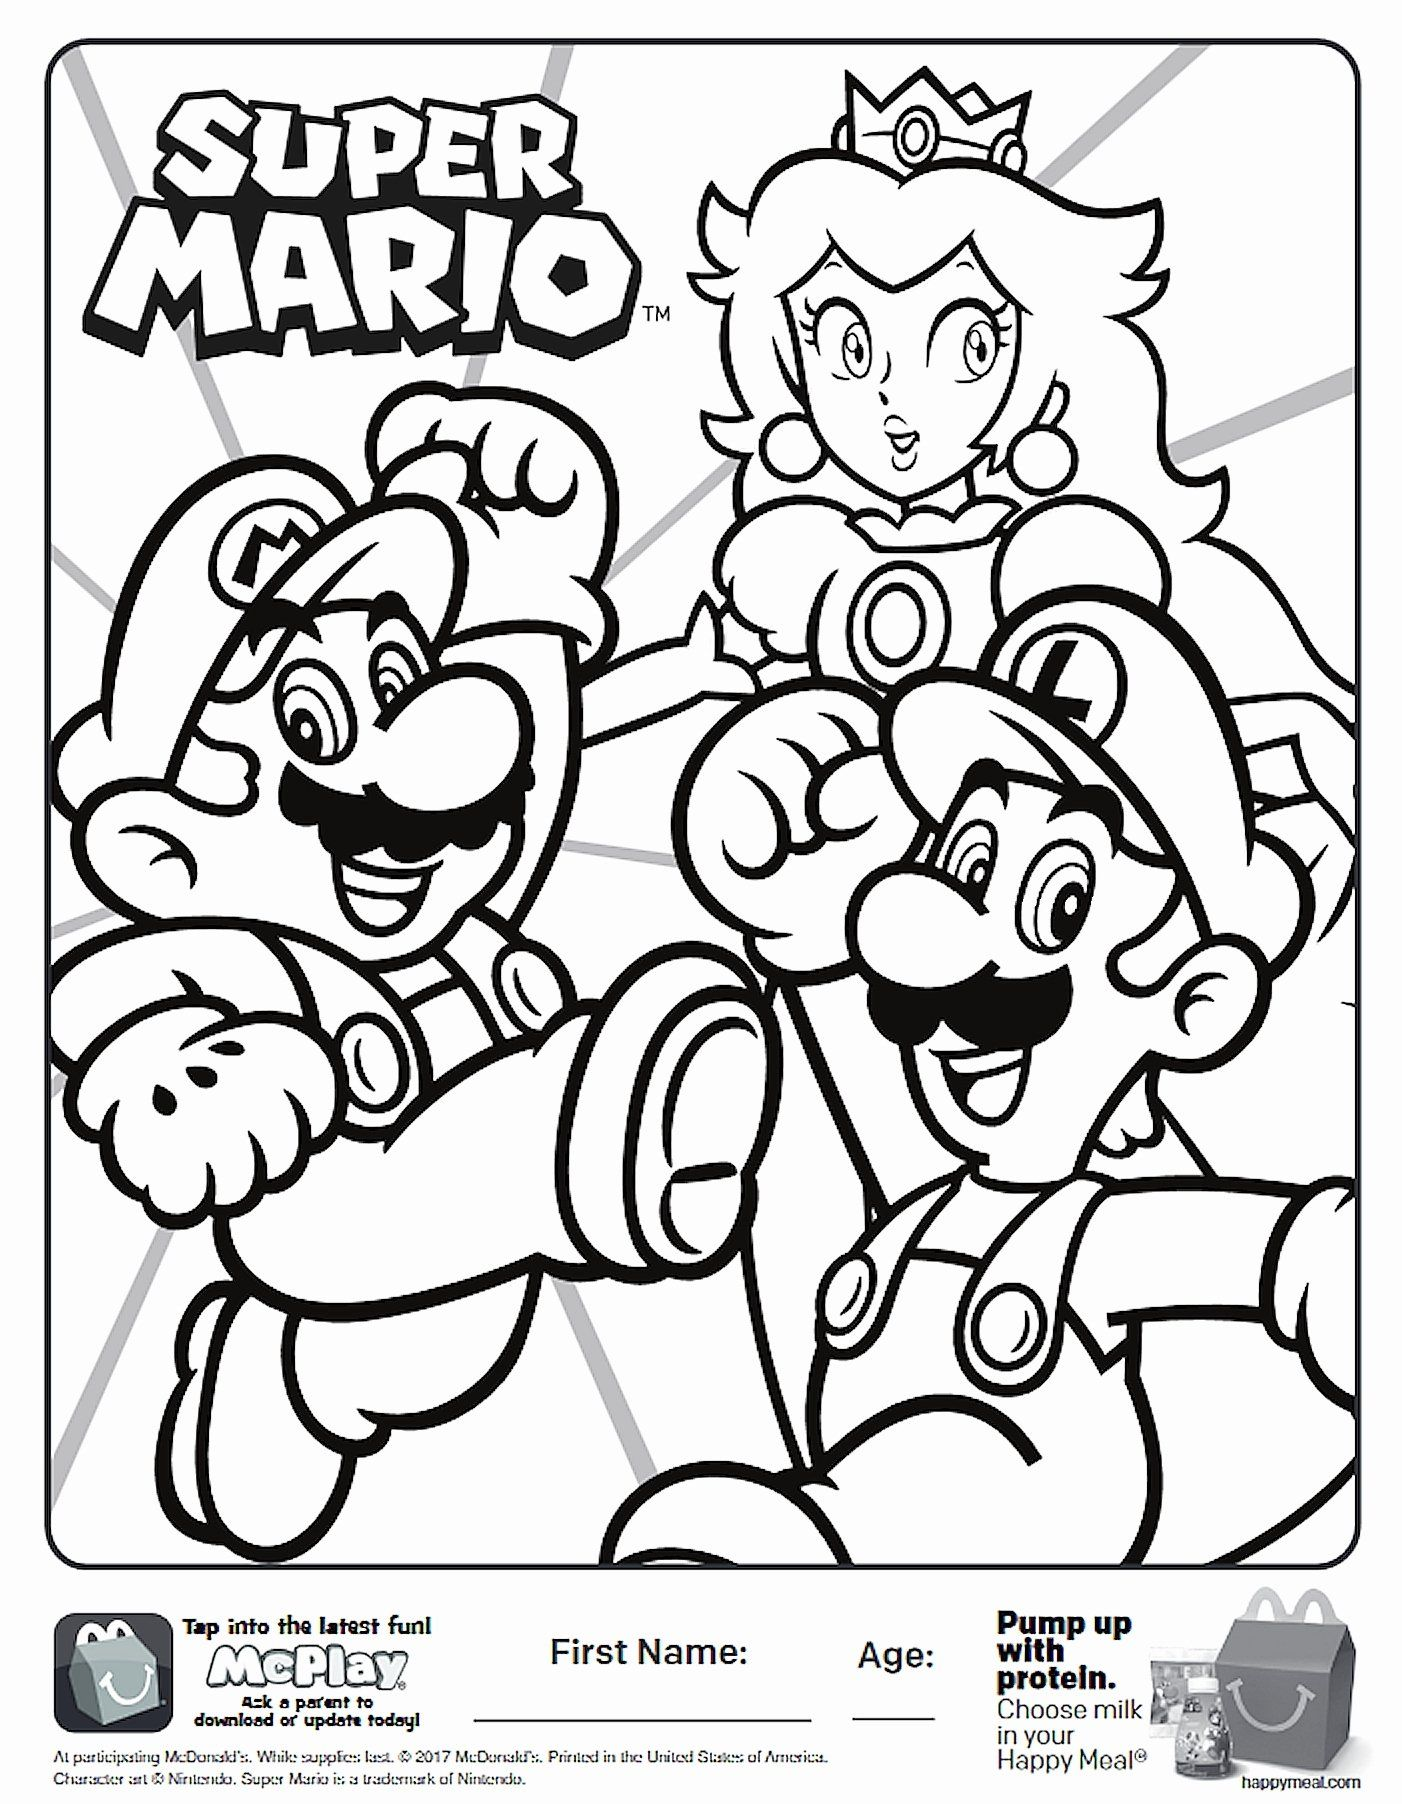 Create Your Own Coloring Page Beautiful Create Your Own Coloring Pages With Your Name In 2020 Valentine Coloring Pages Mario Coloring Pages Super Mario Coloring Pages